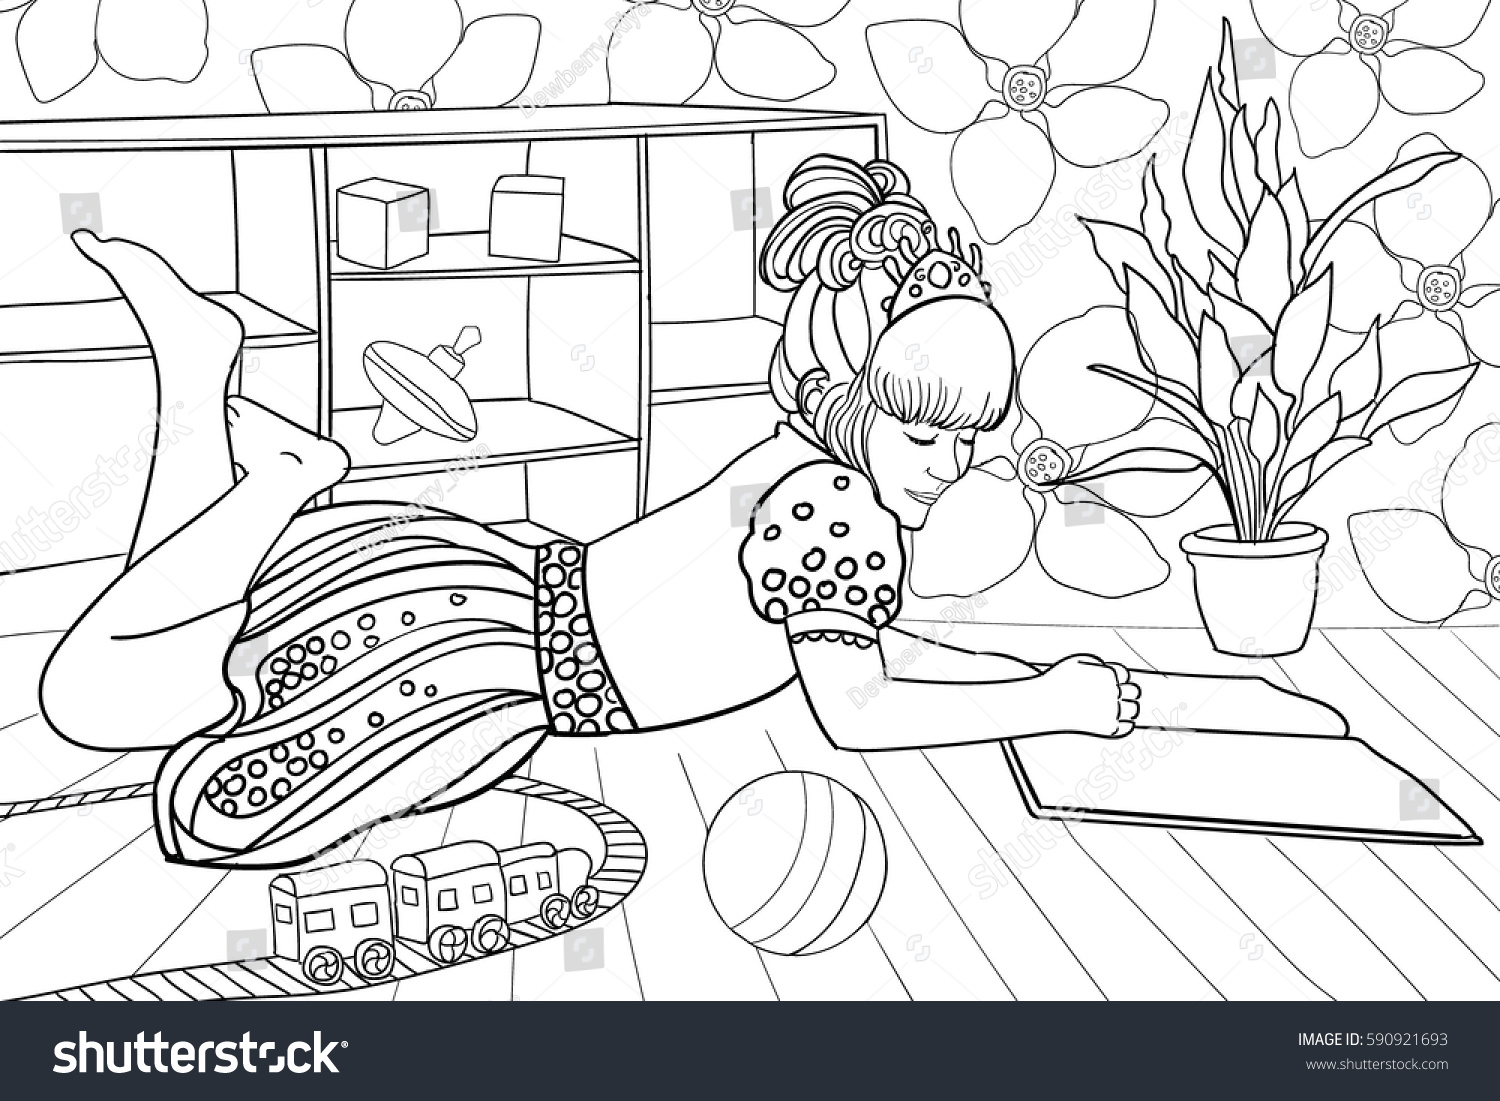 outlinecute coloring page beautiful princess stock vector